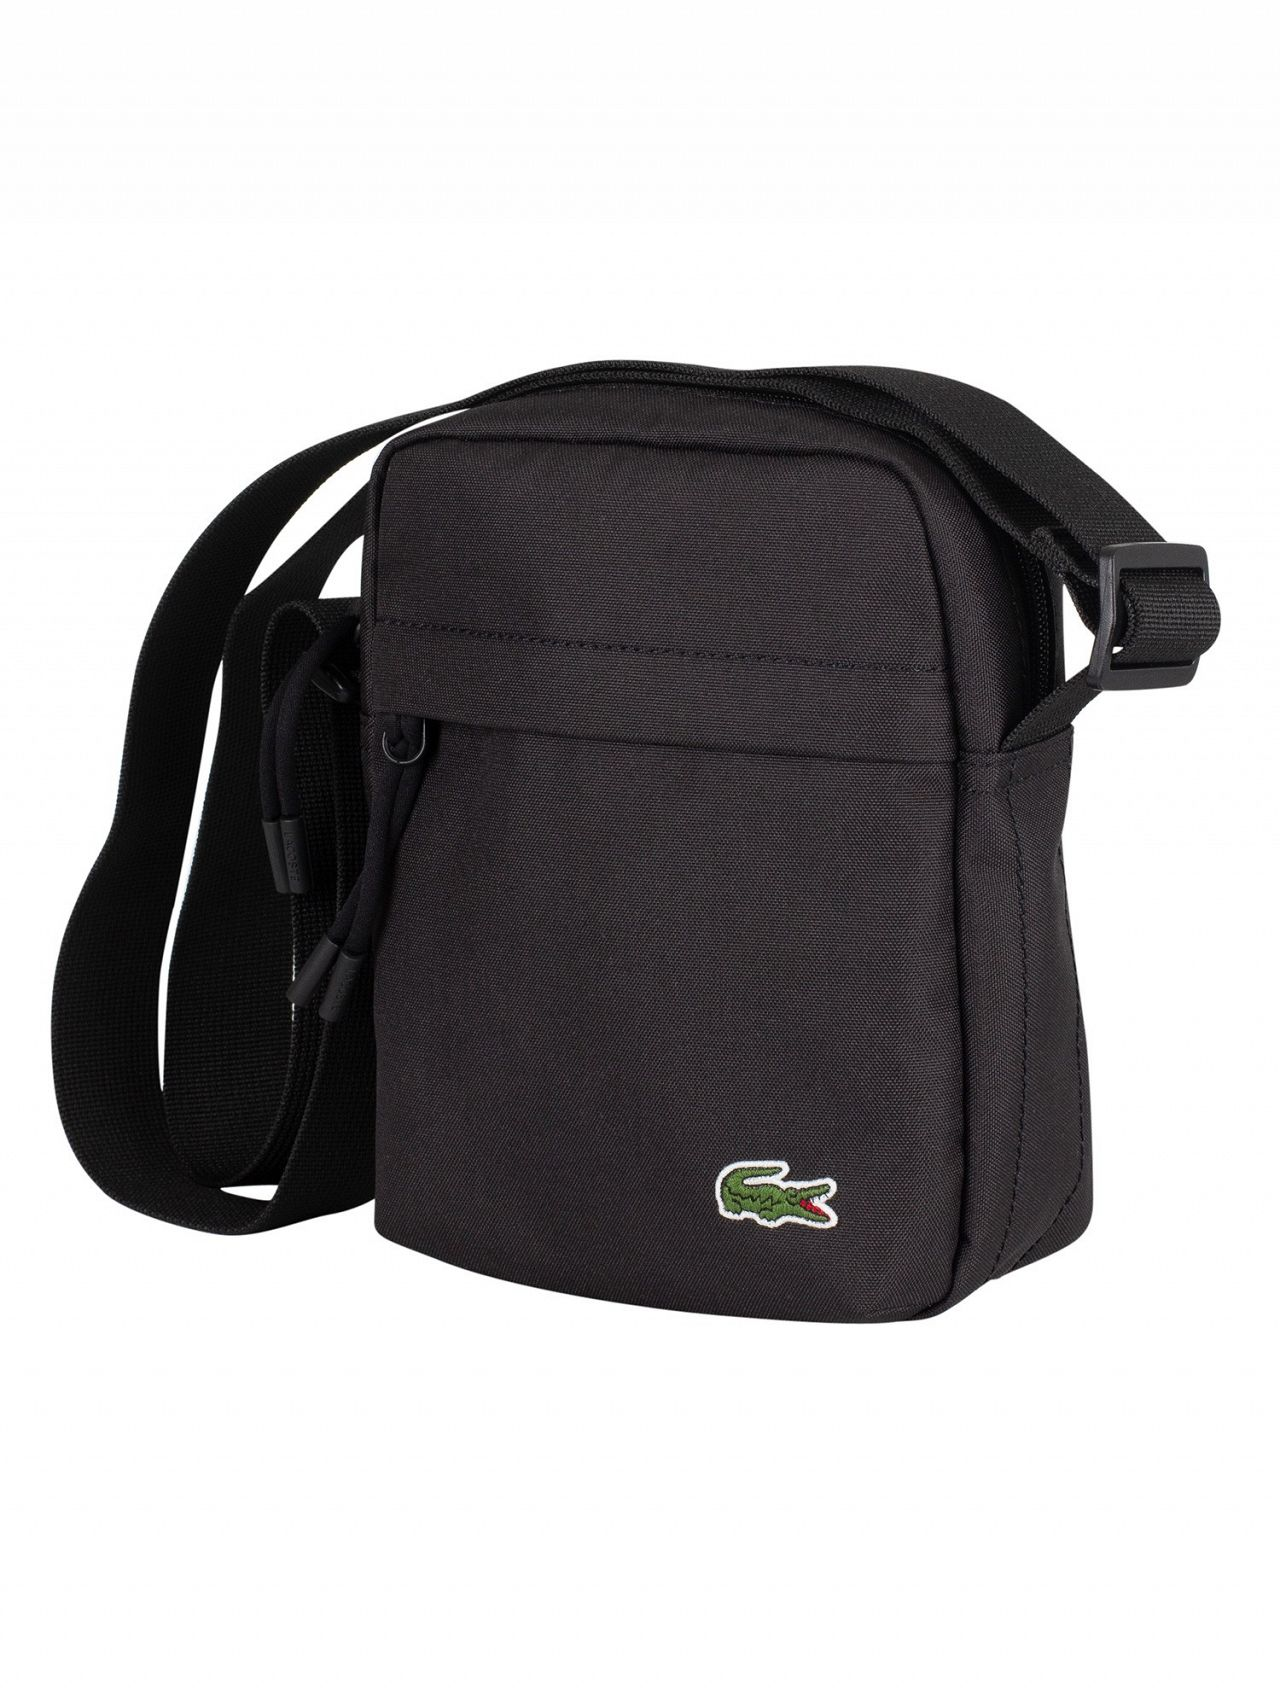 bafd55d45 Lacoste Black Vertical Camera Bag